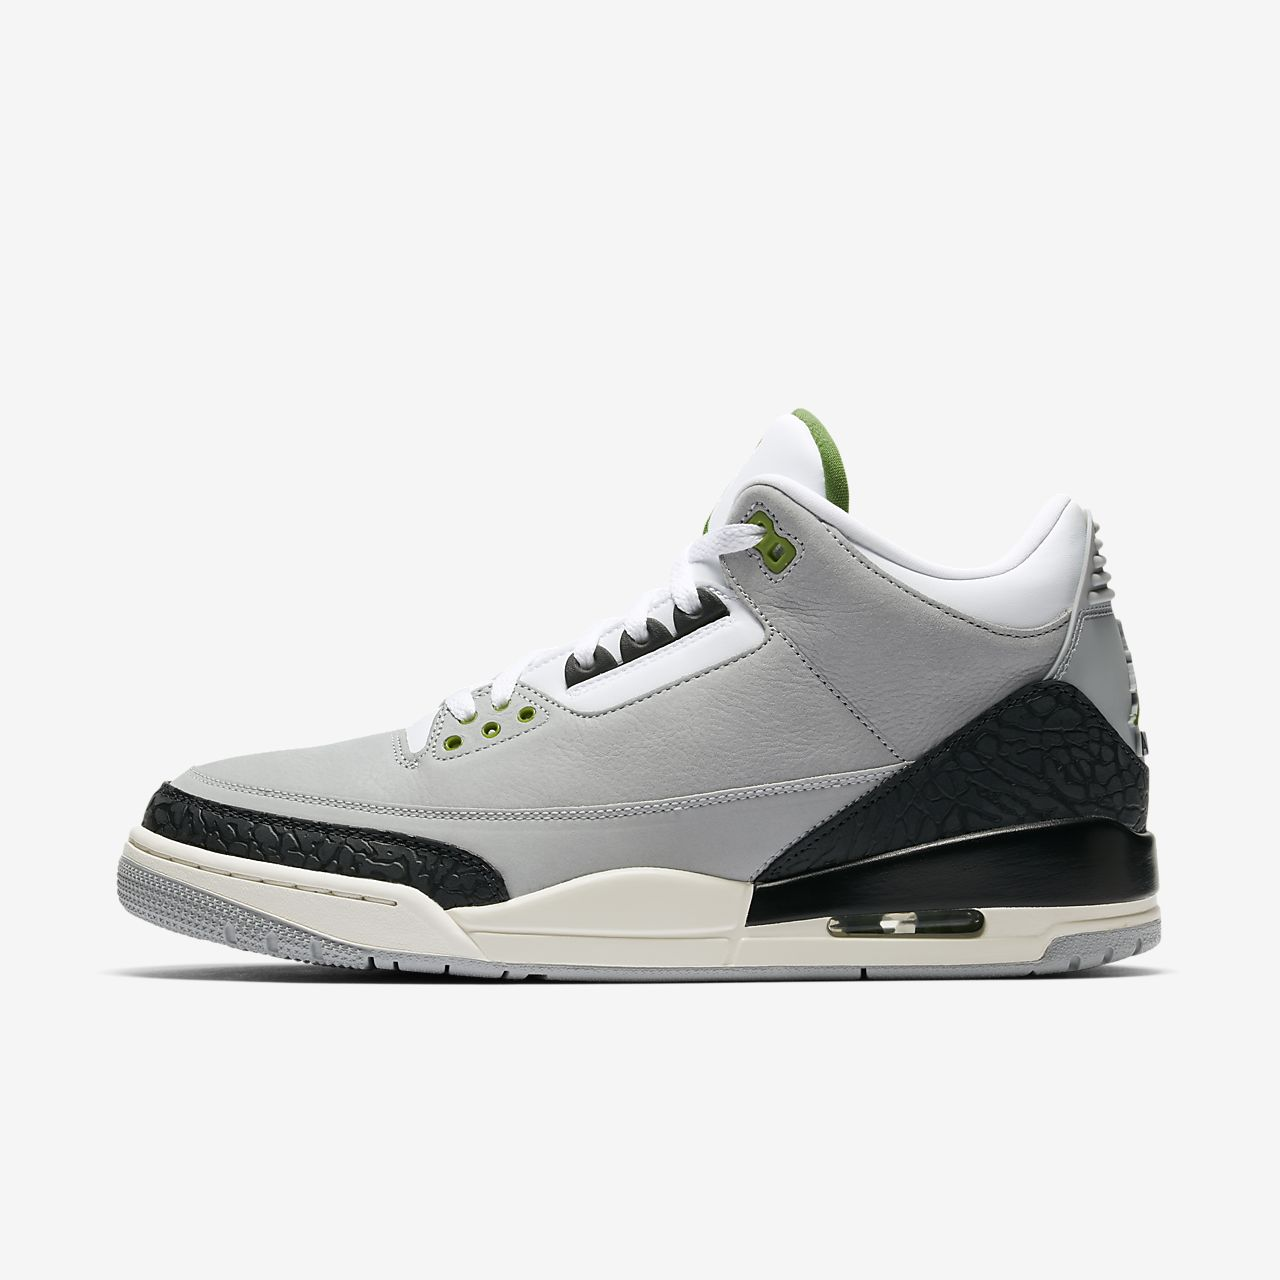 59e7d25f Air Jordan 3 Retro Men's Shoe. Nike.com SG